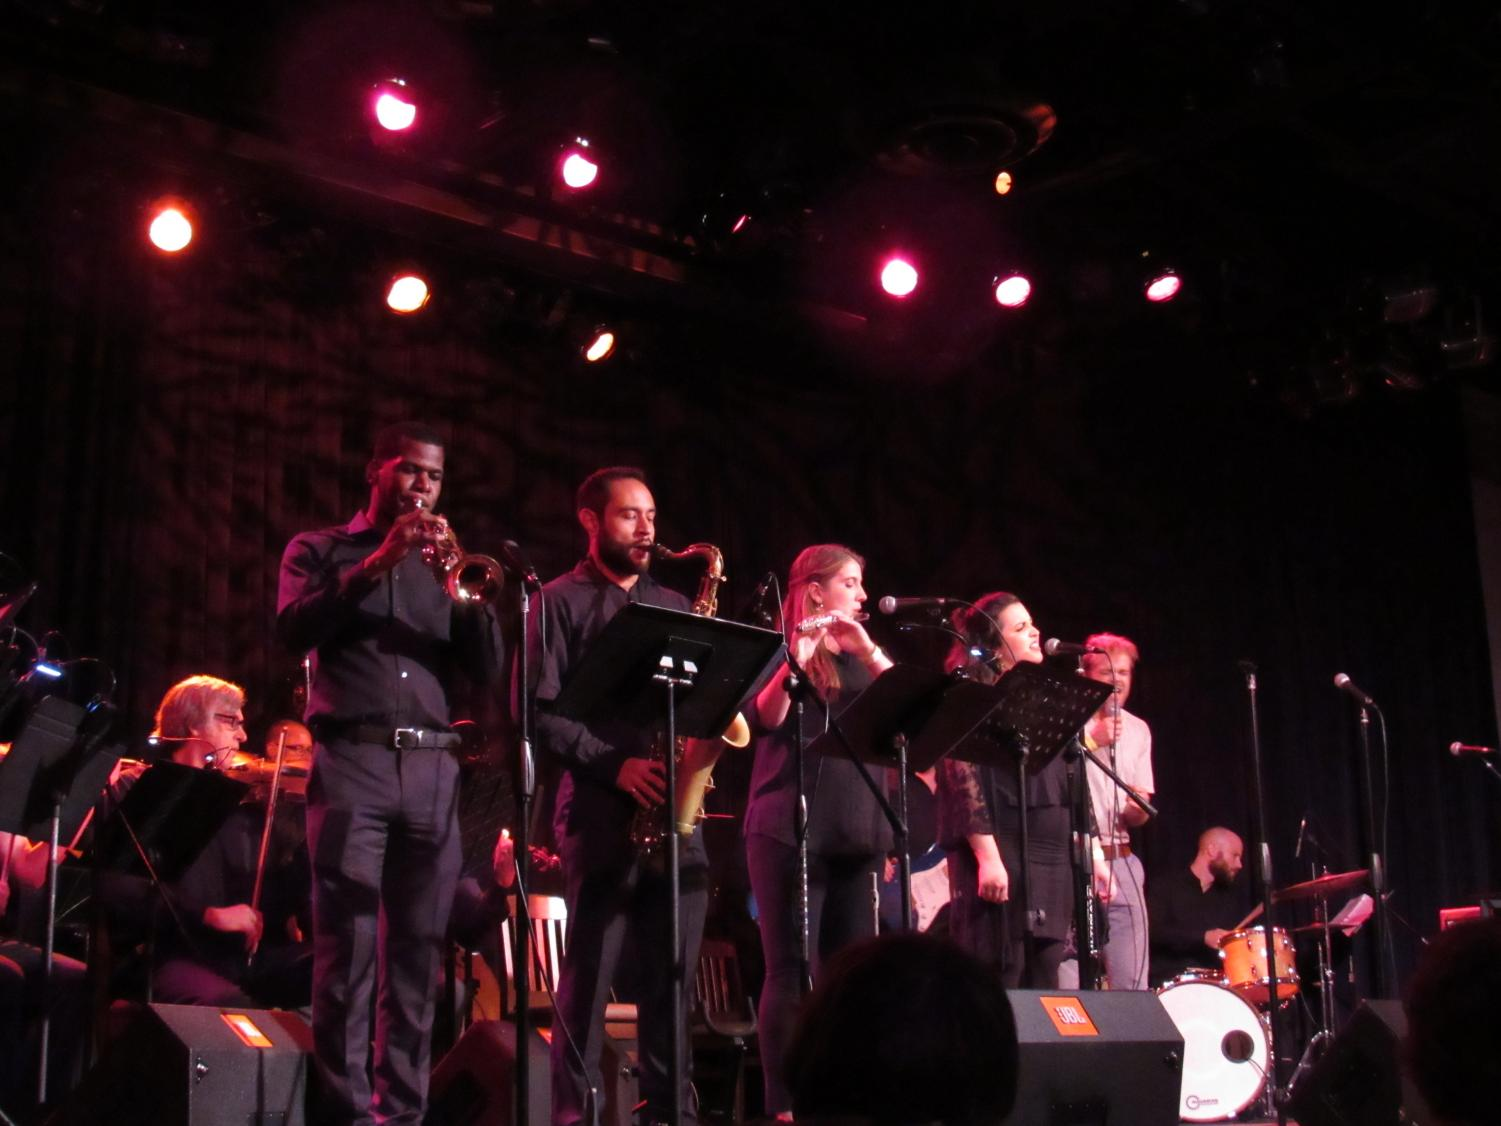 A+variety+of+musicians+helped+back+up+each+individual+song+throughout+the+show.+Photo+credit%3A+Natalie+Hanson